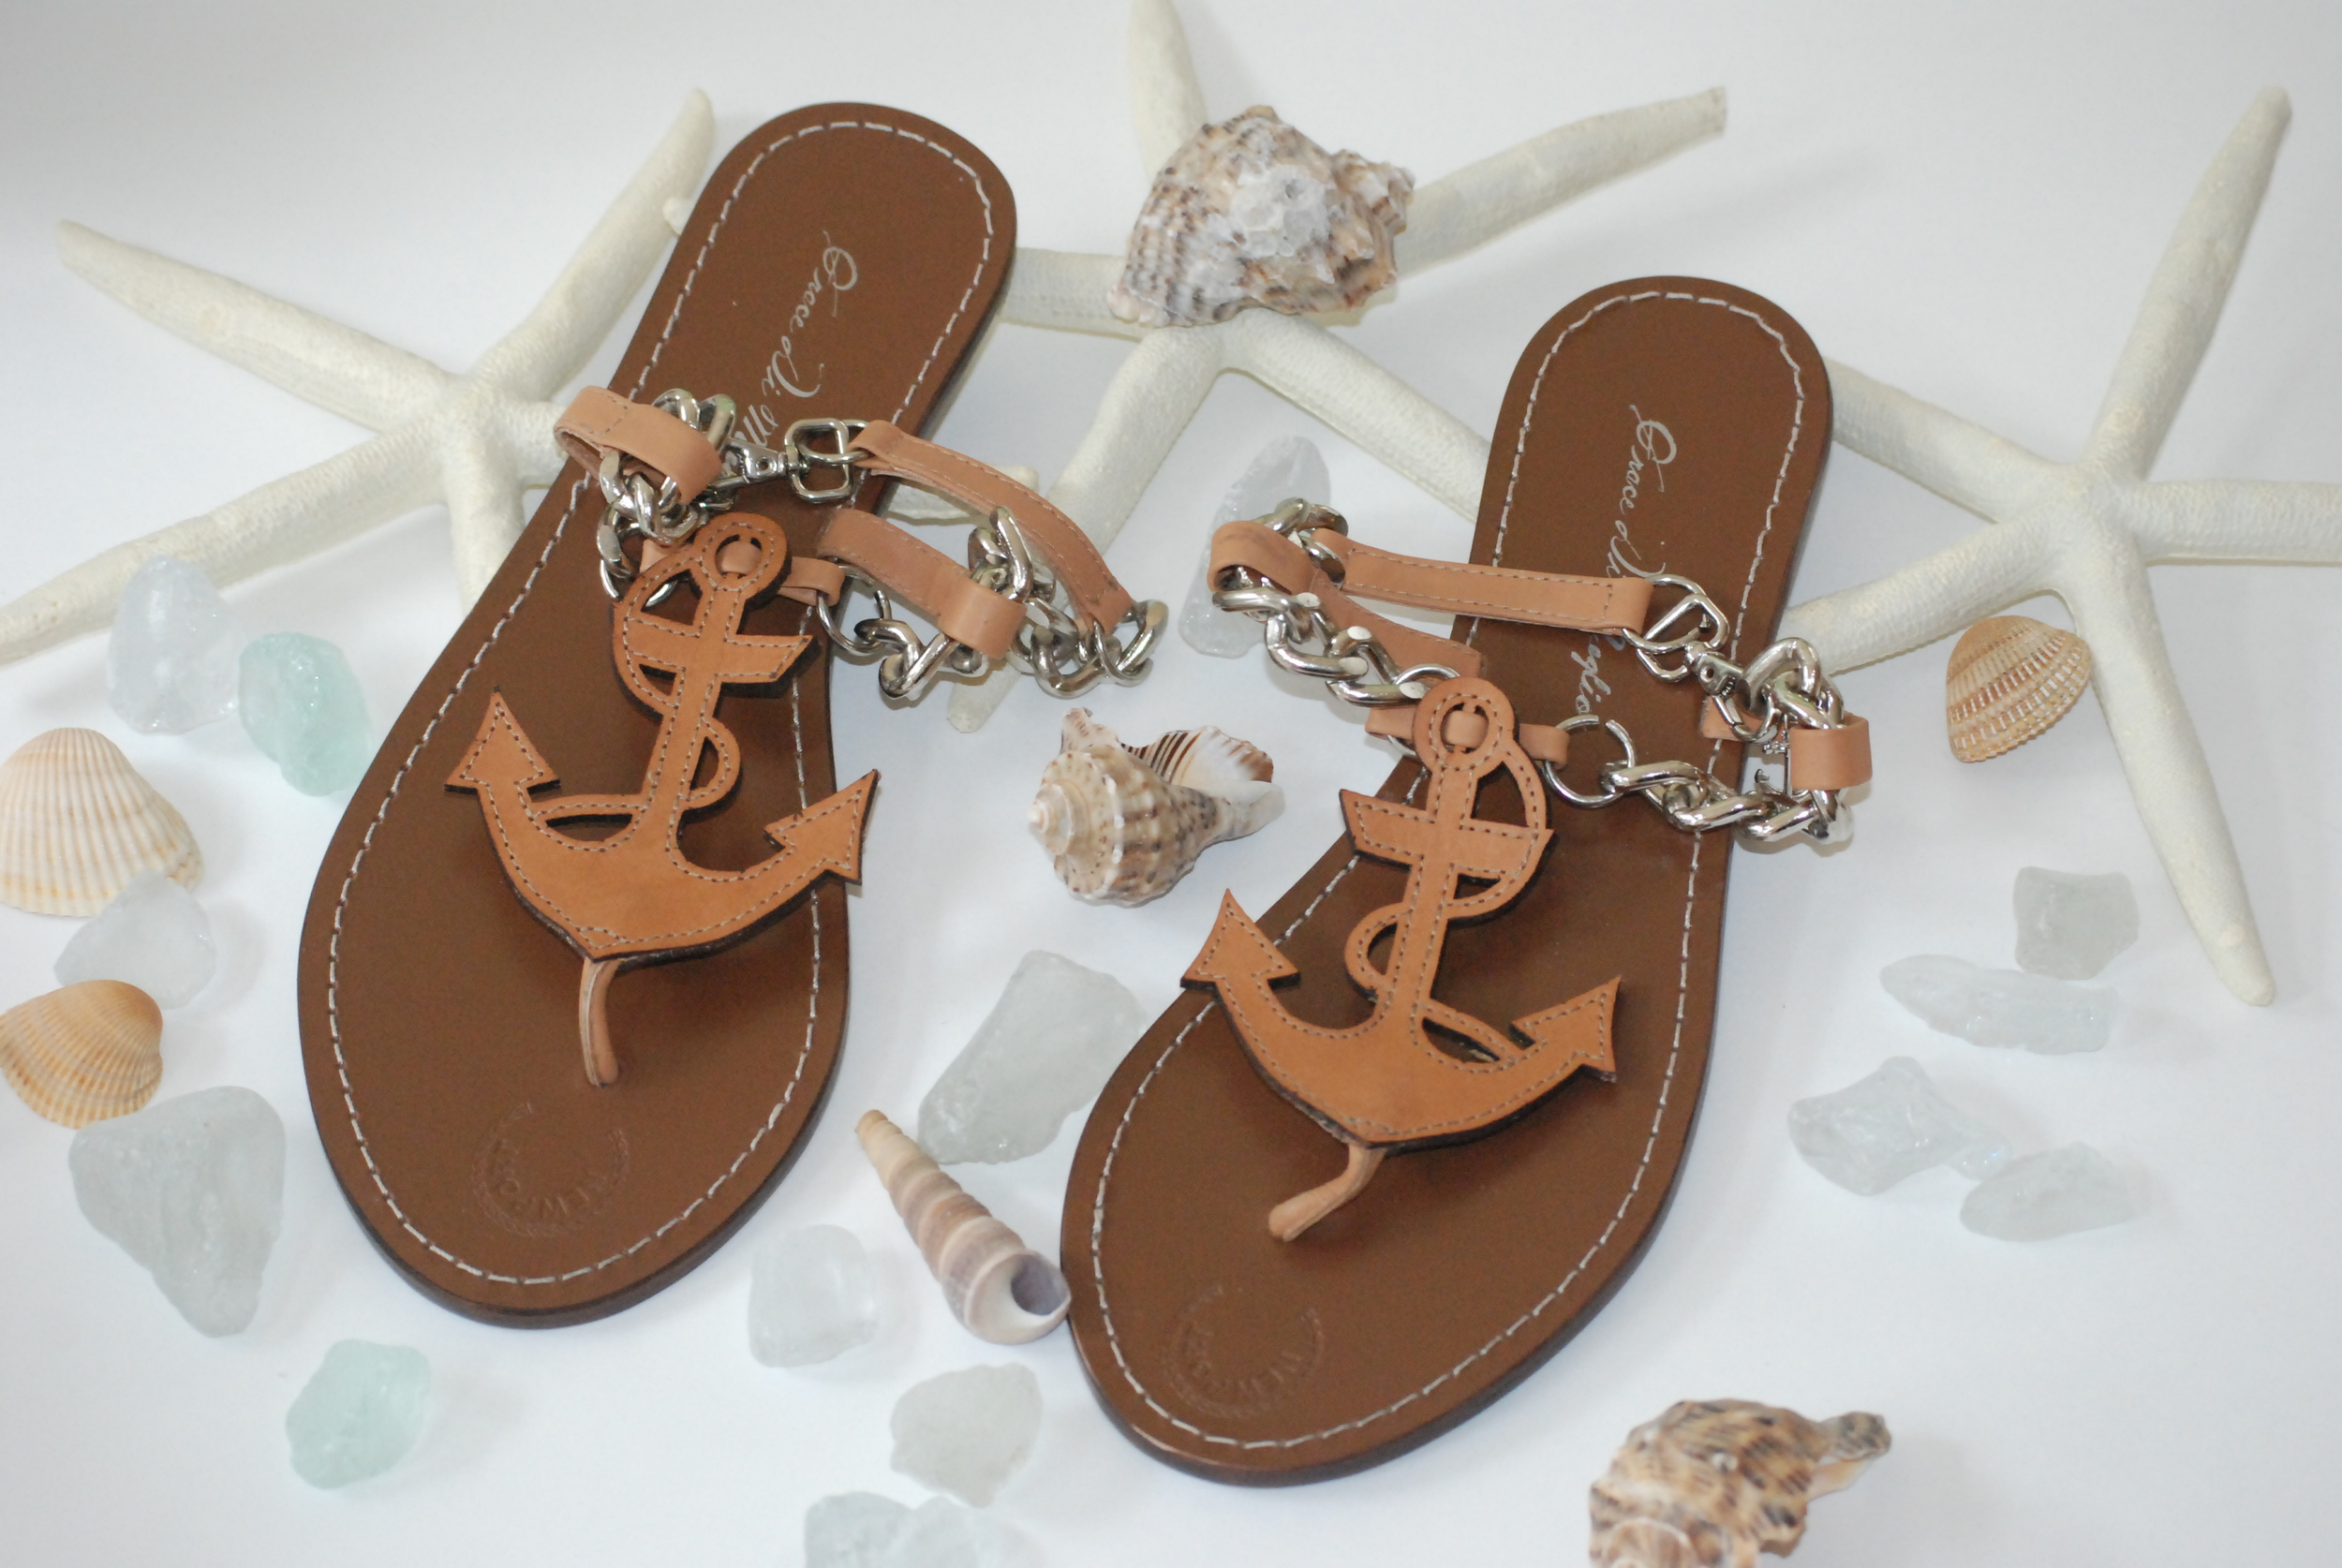 Interior Designers in Rhode Island, brown sandals.JPG